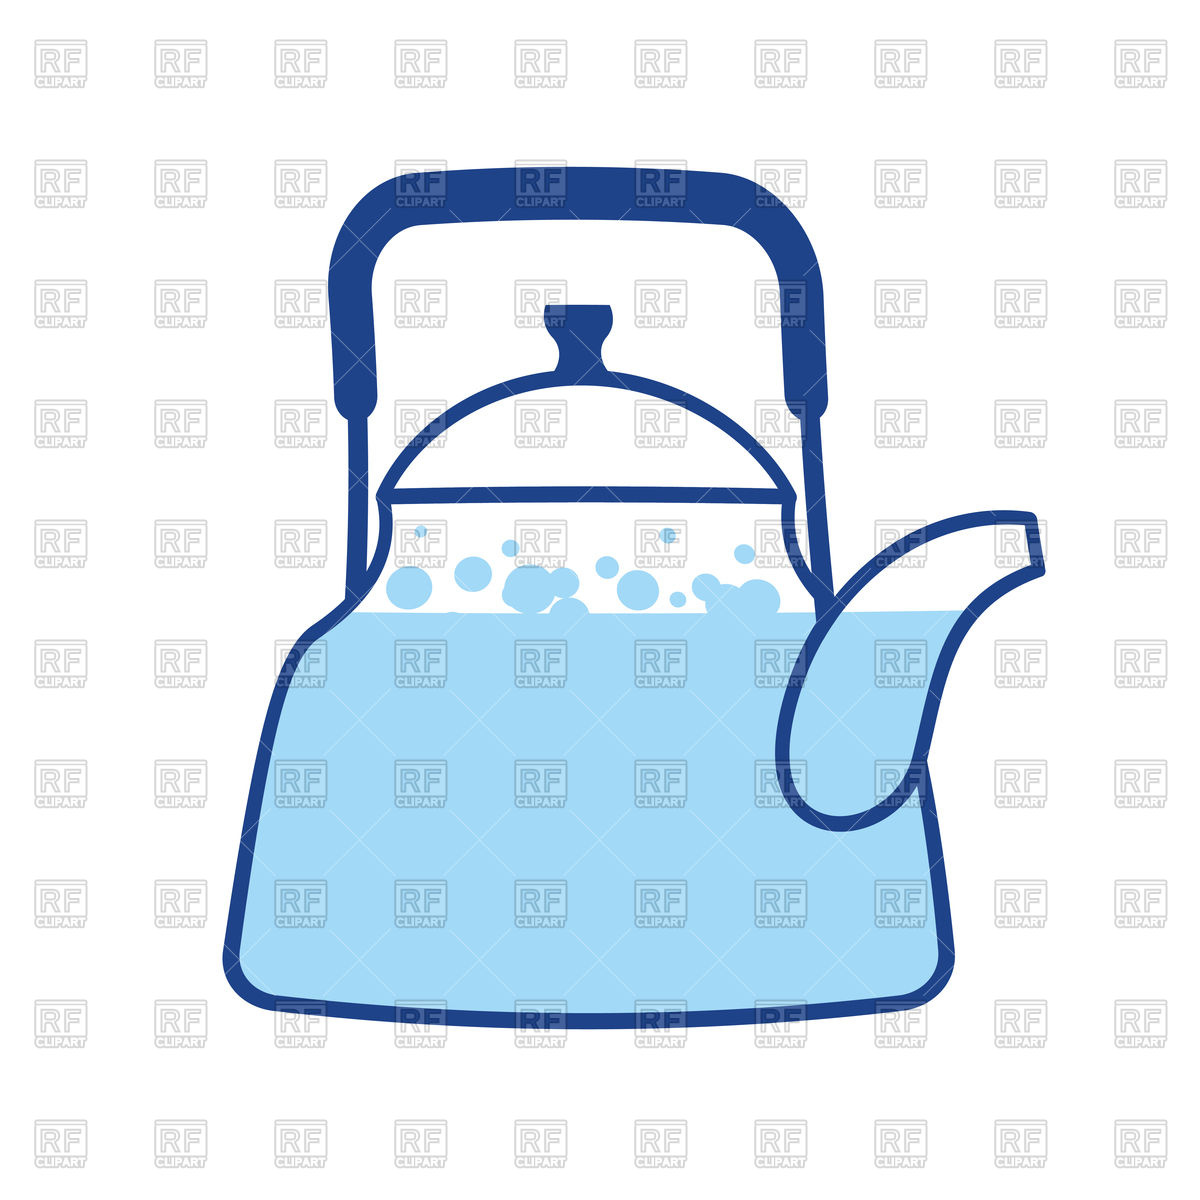 Kettle boiling water icon Stock Vector Image.